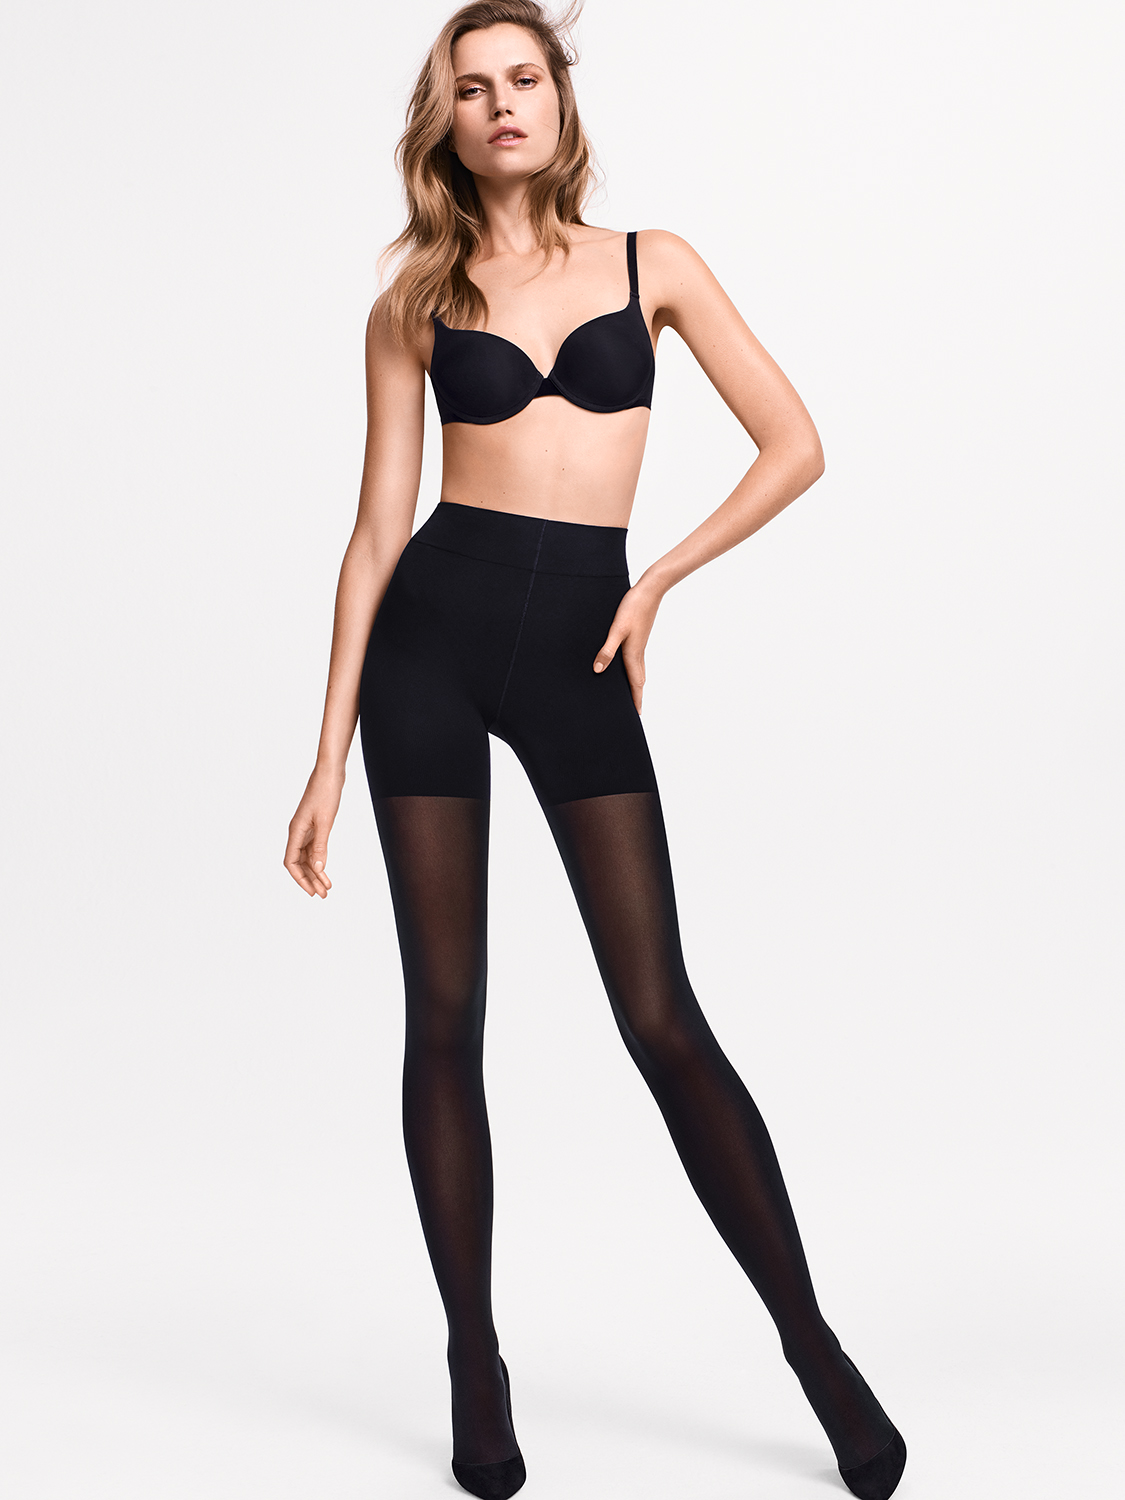 Колготы tummy 66 control top tights фото